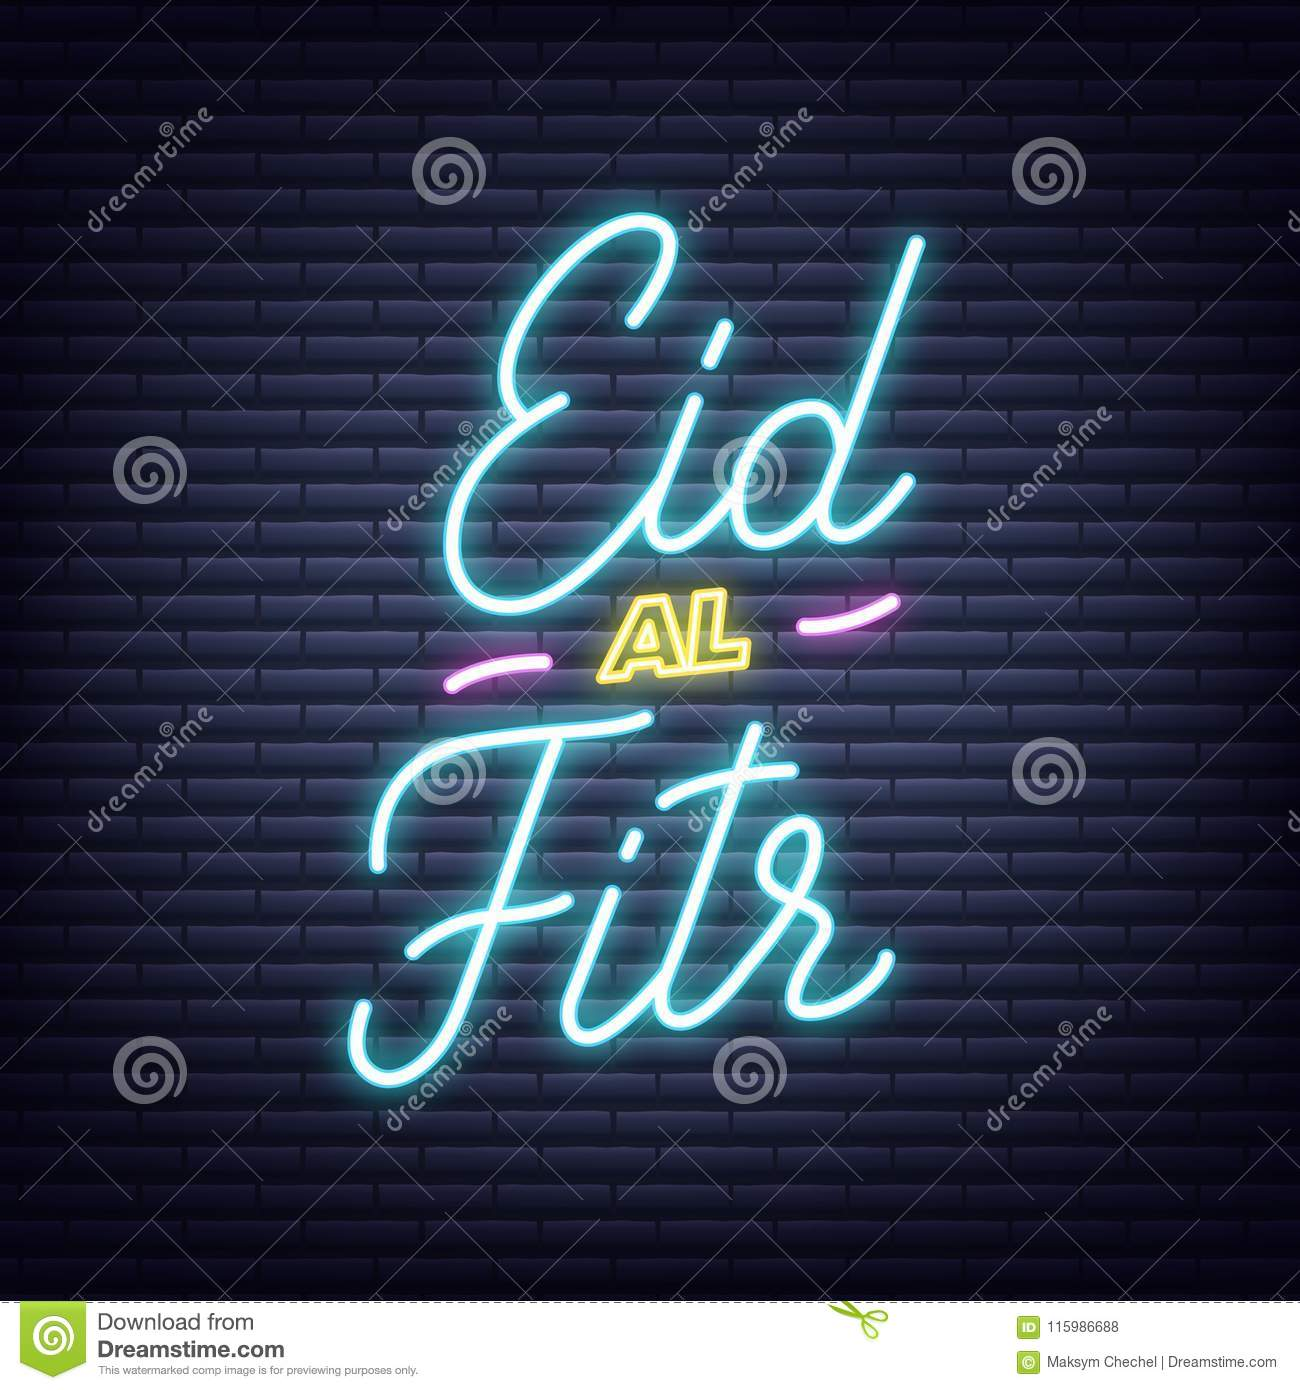 Eid Al Fitr Neon Design Illuminated Typography Signboard For End Of